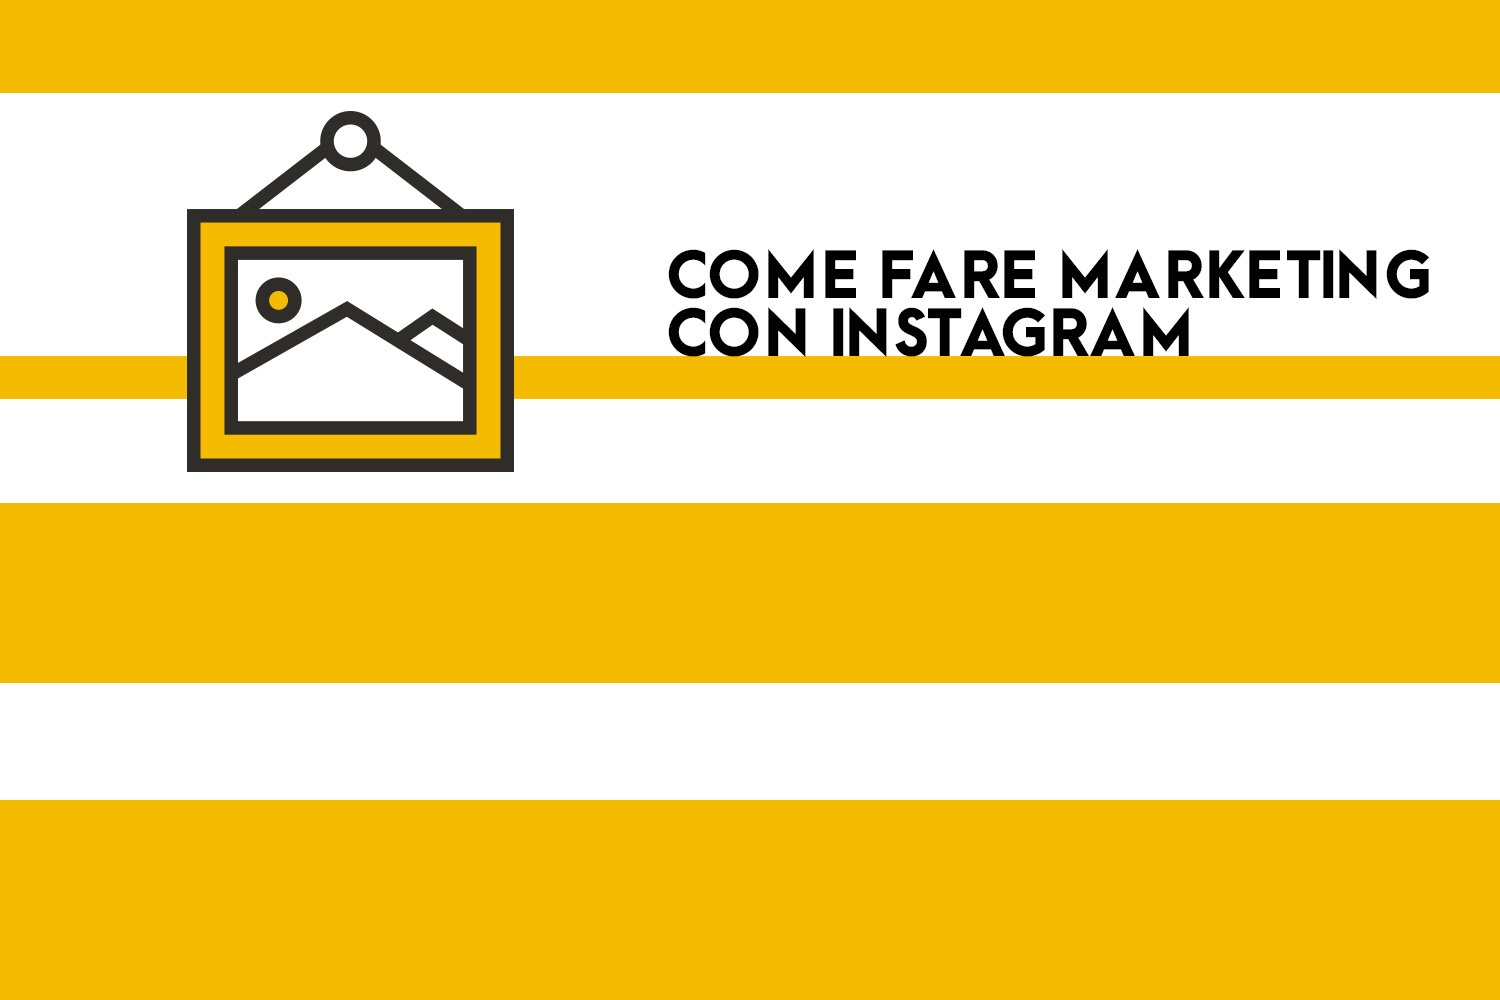 Le guide di OFG Advertising: fare marketing con Instagram